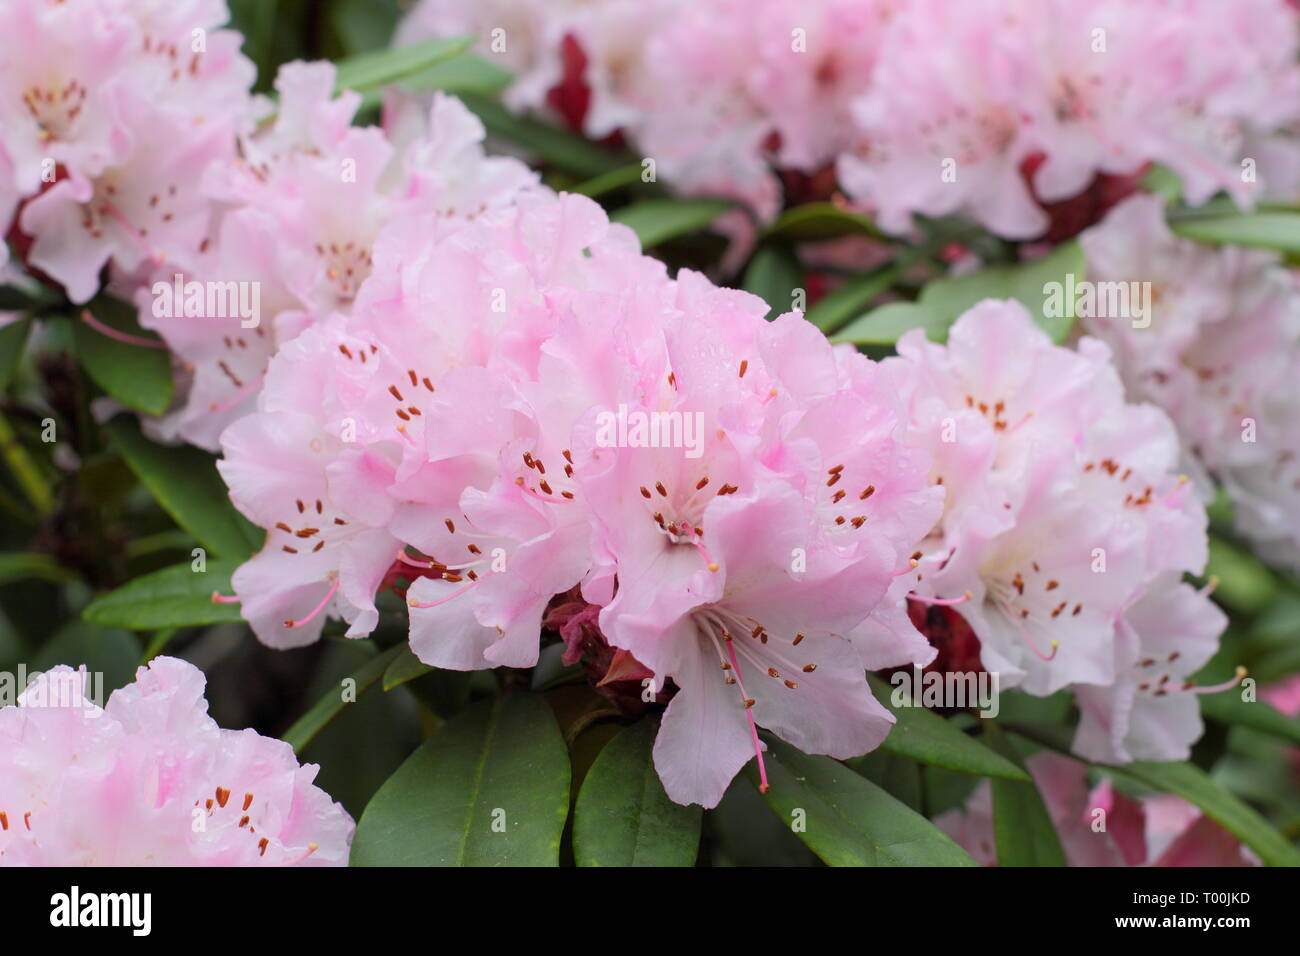 Rhododendron 'Christmas Cheer'. Blooms of early flowering rhododendron, 'Christmas Cheer' in an English garden -  late February, UK - Stock Image